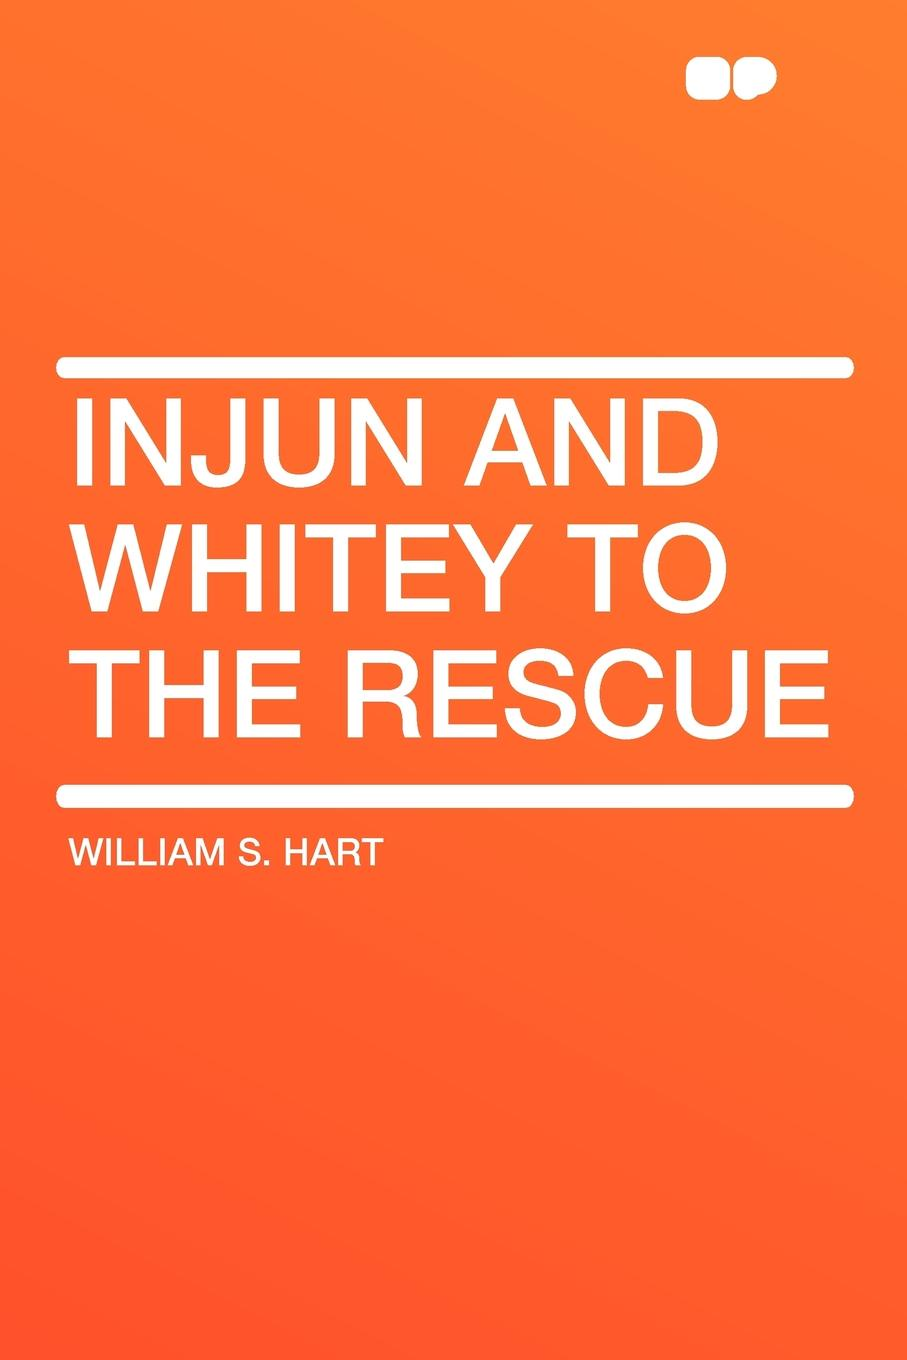 William S. Hart Injun and Whitey to the Rescue mrs pepperpot to the rescue